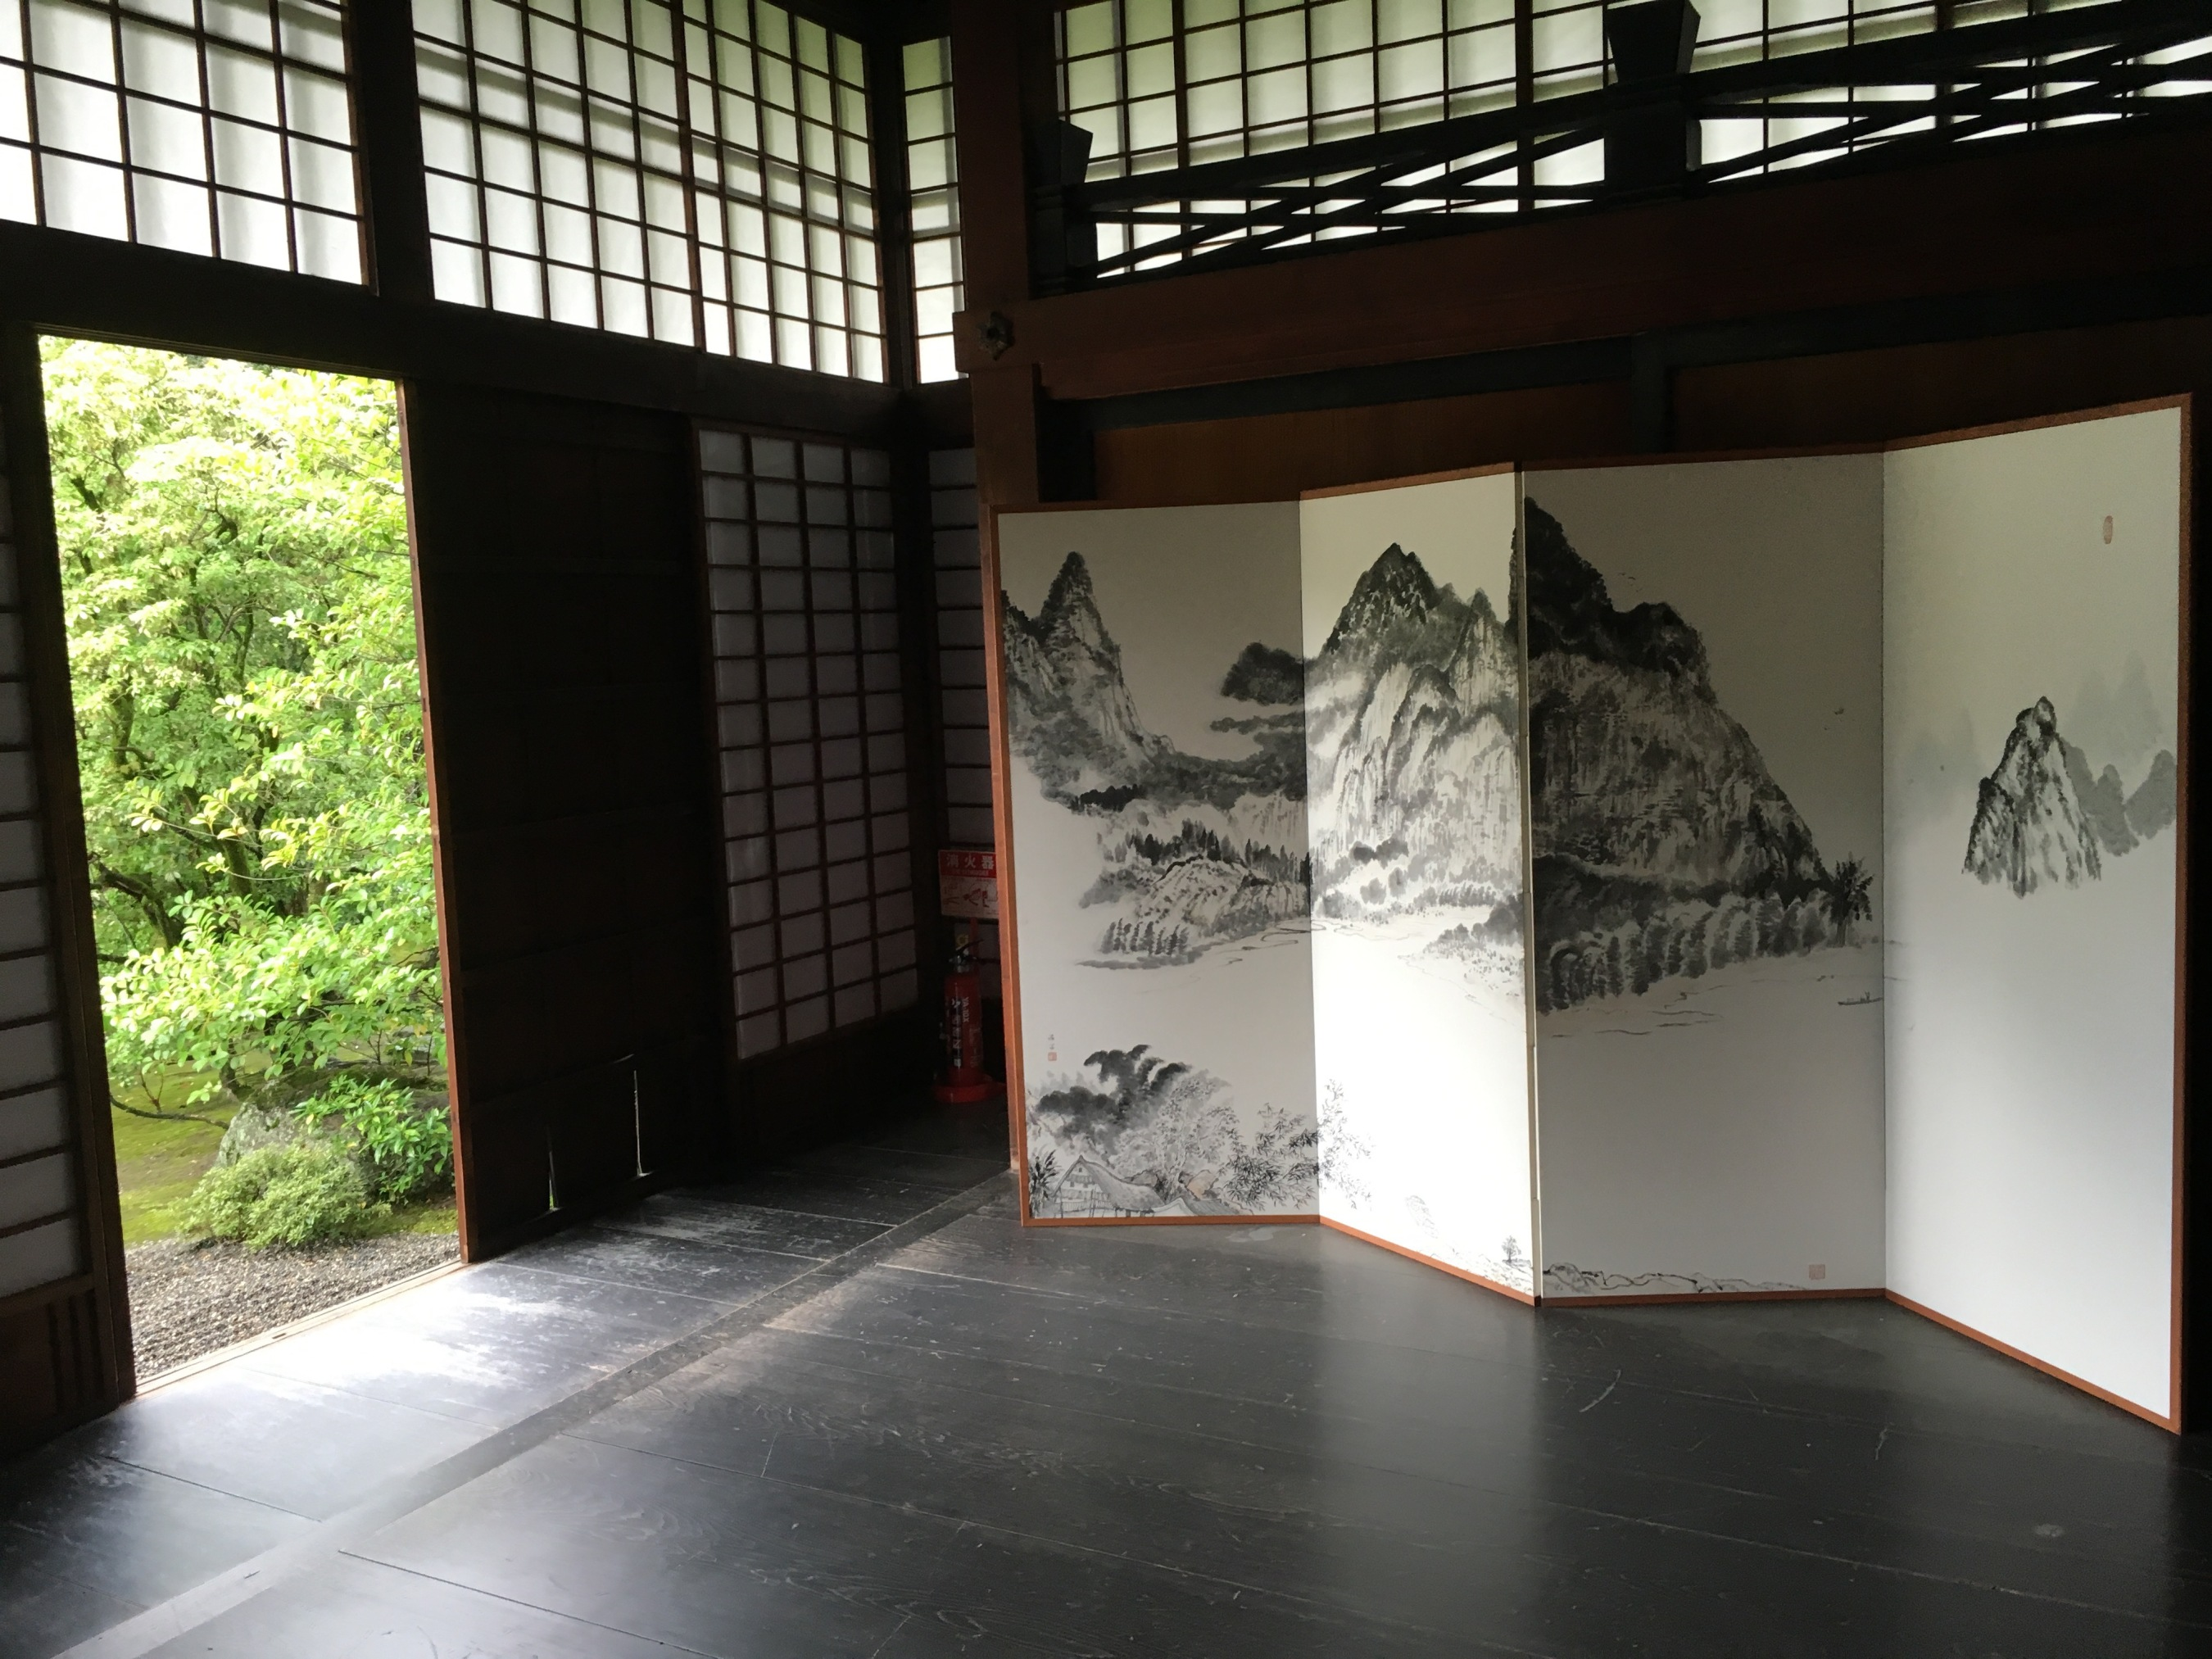 Another connection to water that I am pondering as I travel around is the Japanese art of Sumi-e - ink wash painting with black ink. This example is at Shunkoin Temple. The artist captures the spirit of the scene through the careful application of water in different shades of black. It is an art that would take years to master.